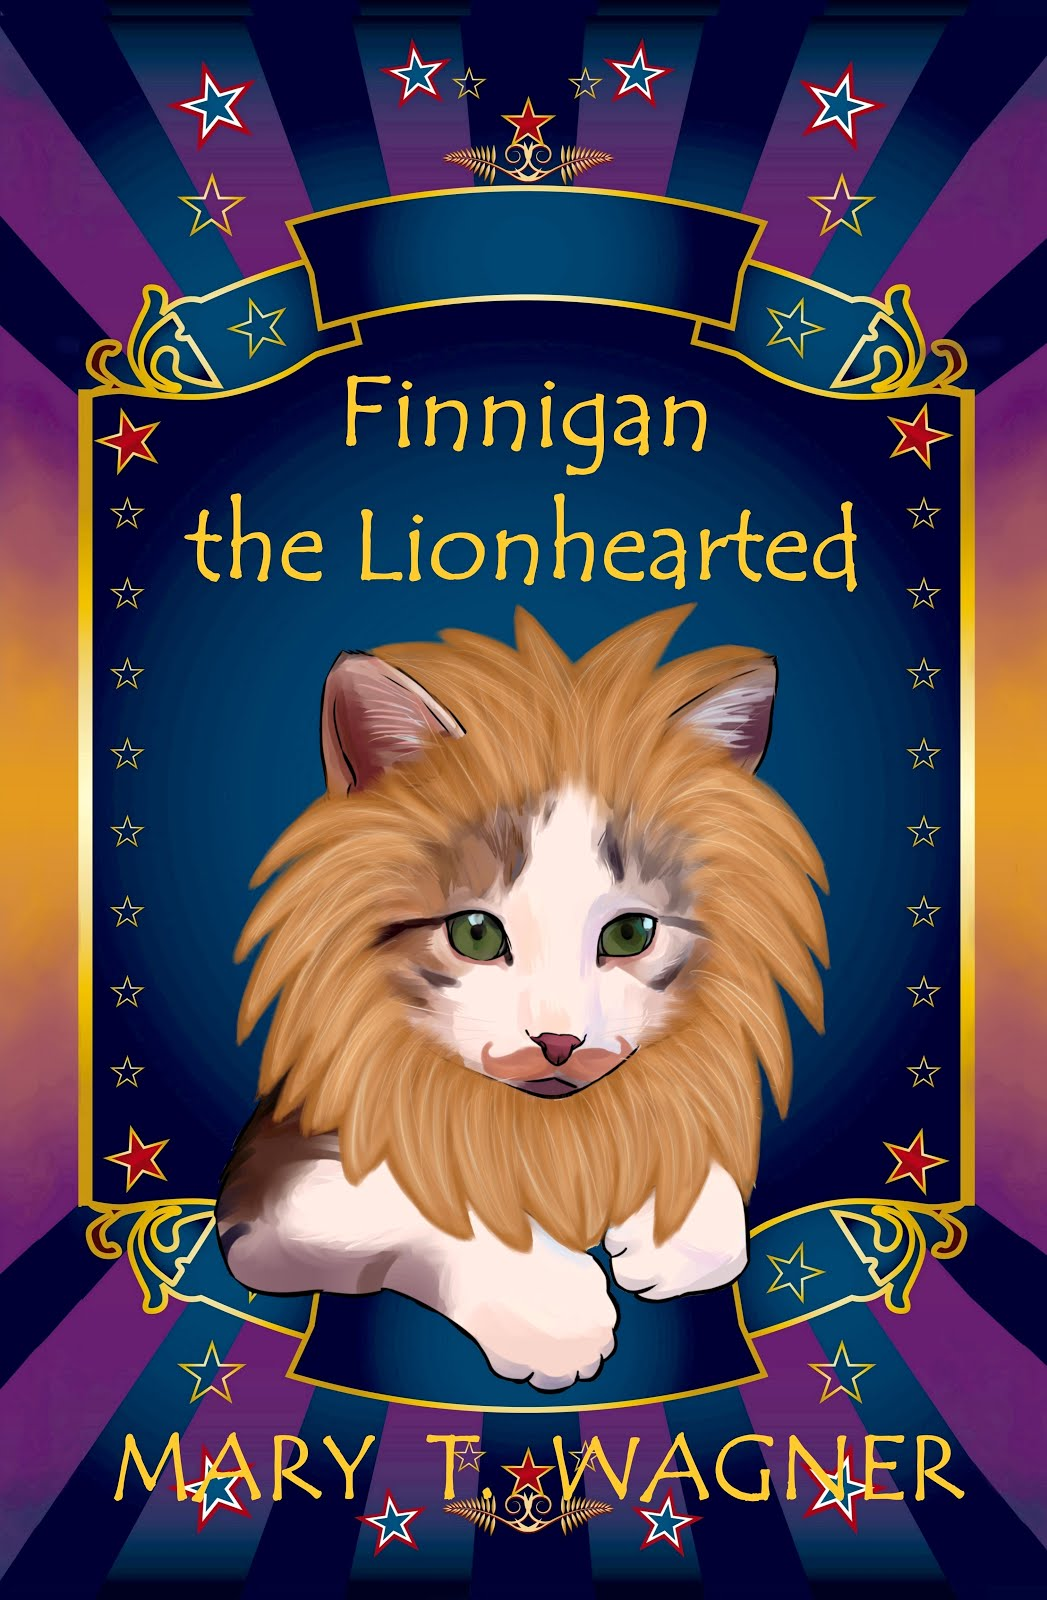 Book 3 of the Finnigan Series!